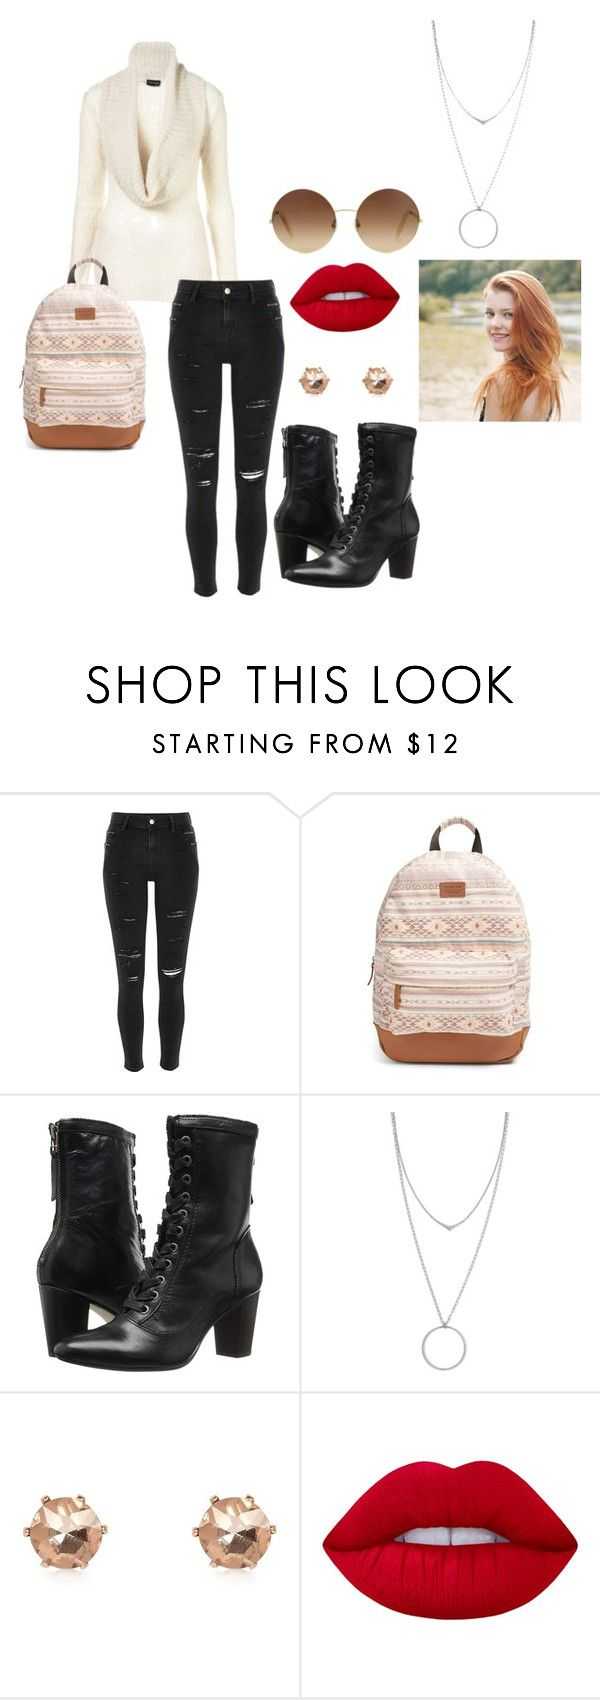 """women are beautiful"" by sjhbug ❤ liked on Polyvore featuring Topshop, River Island, Rip Curl, Johnston & Murphy, Botkier, Lime Crime and Victoria Beckham"